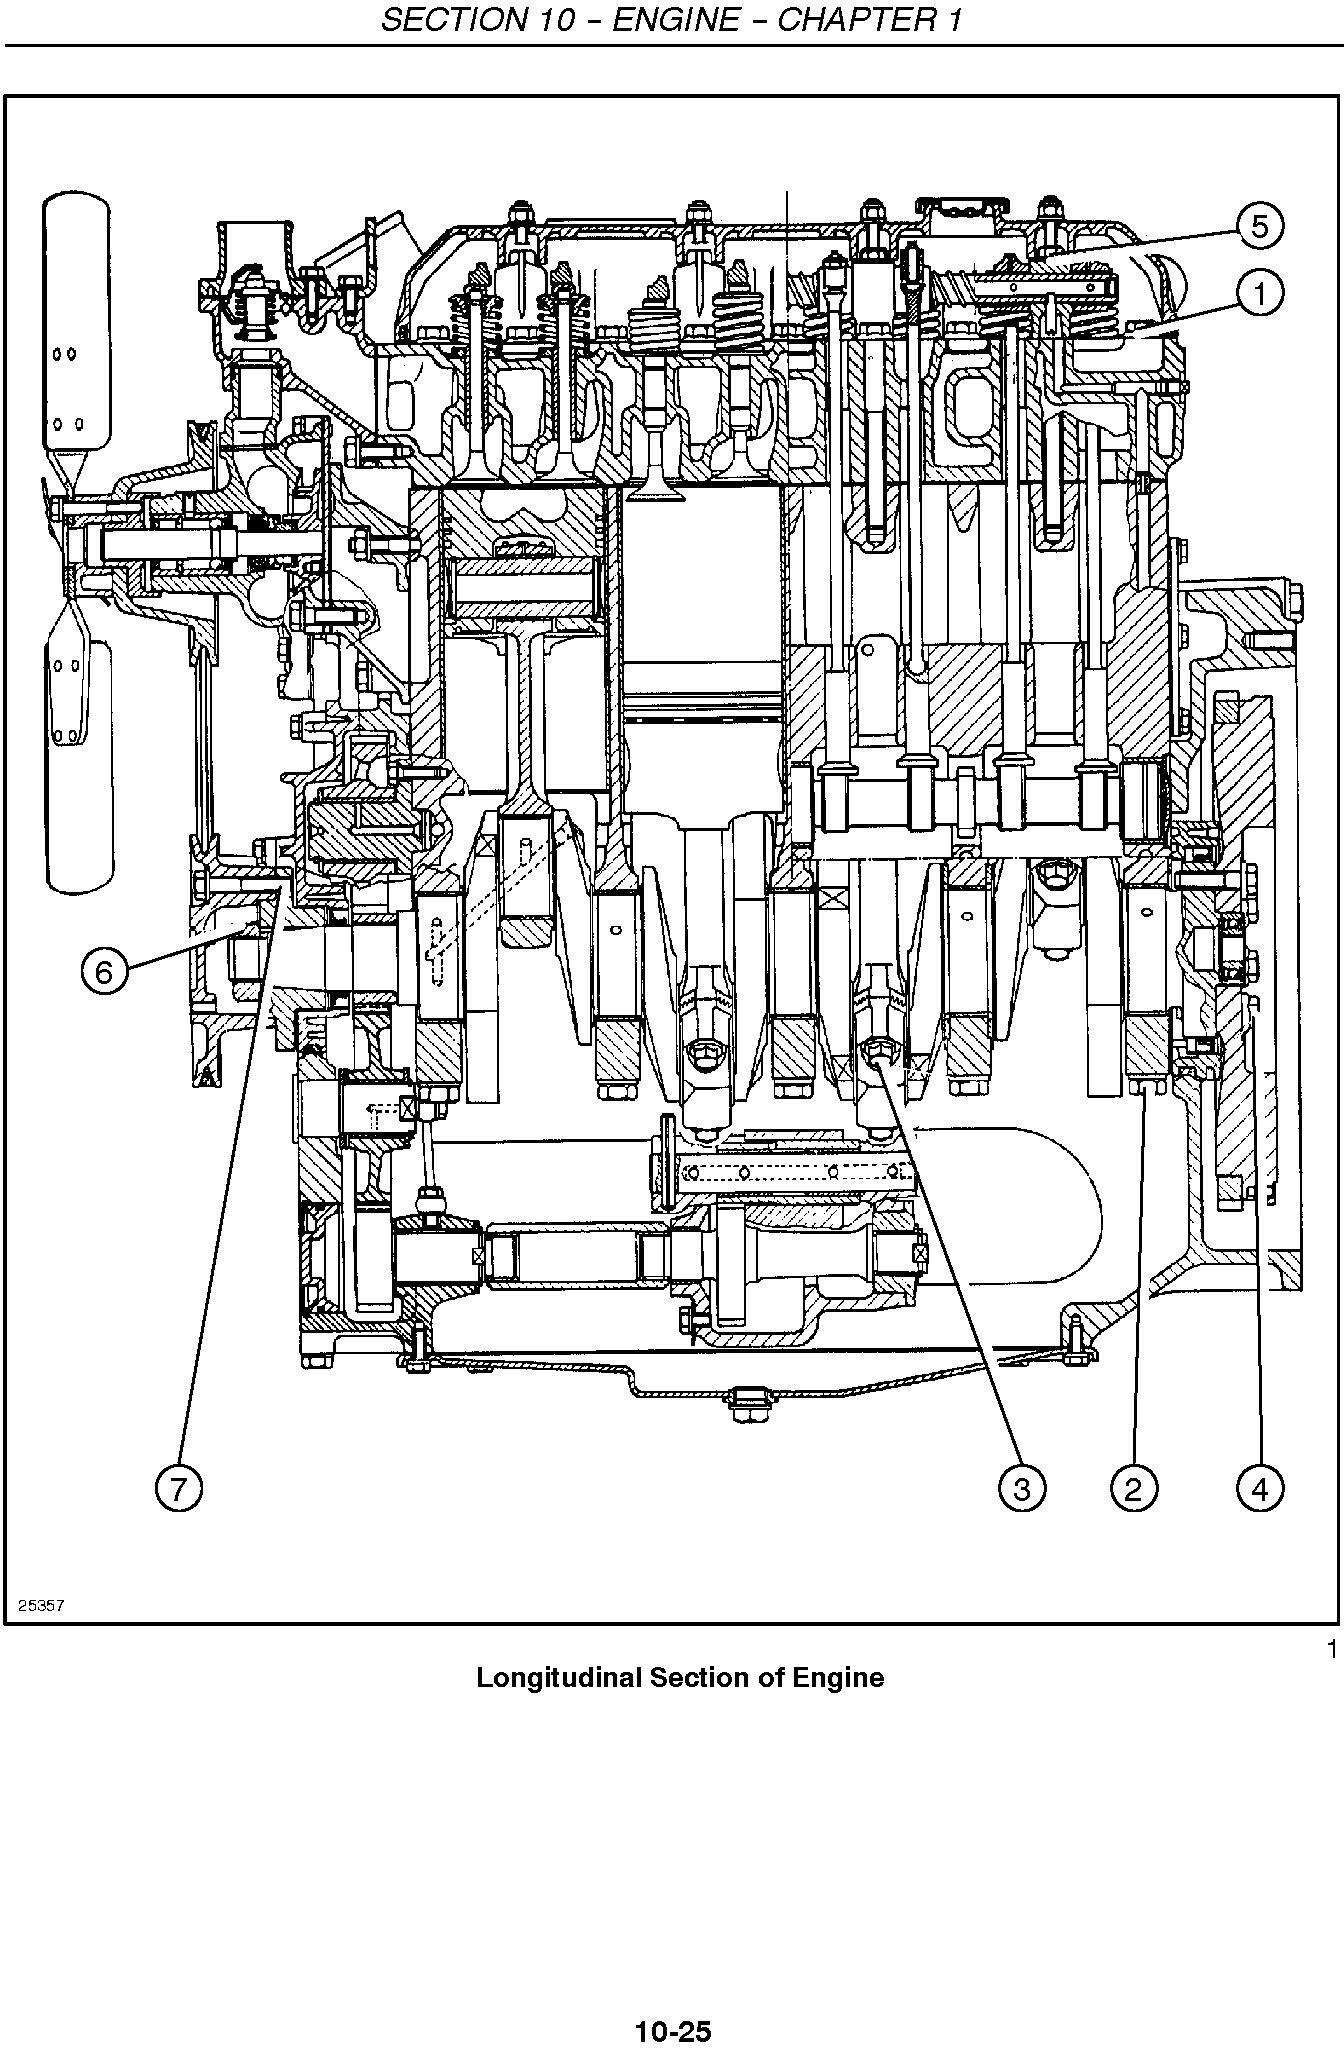 New Holland TK75VA, TK80A, TK80MA, TK90A, TK90MA, TK100A Crawler Tractor Service Manual - 2